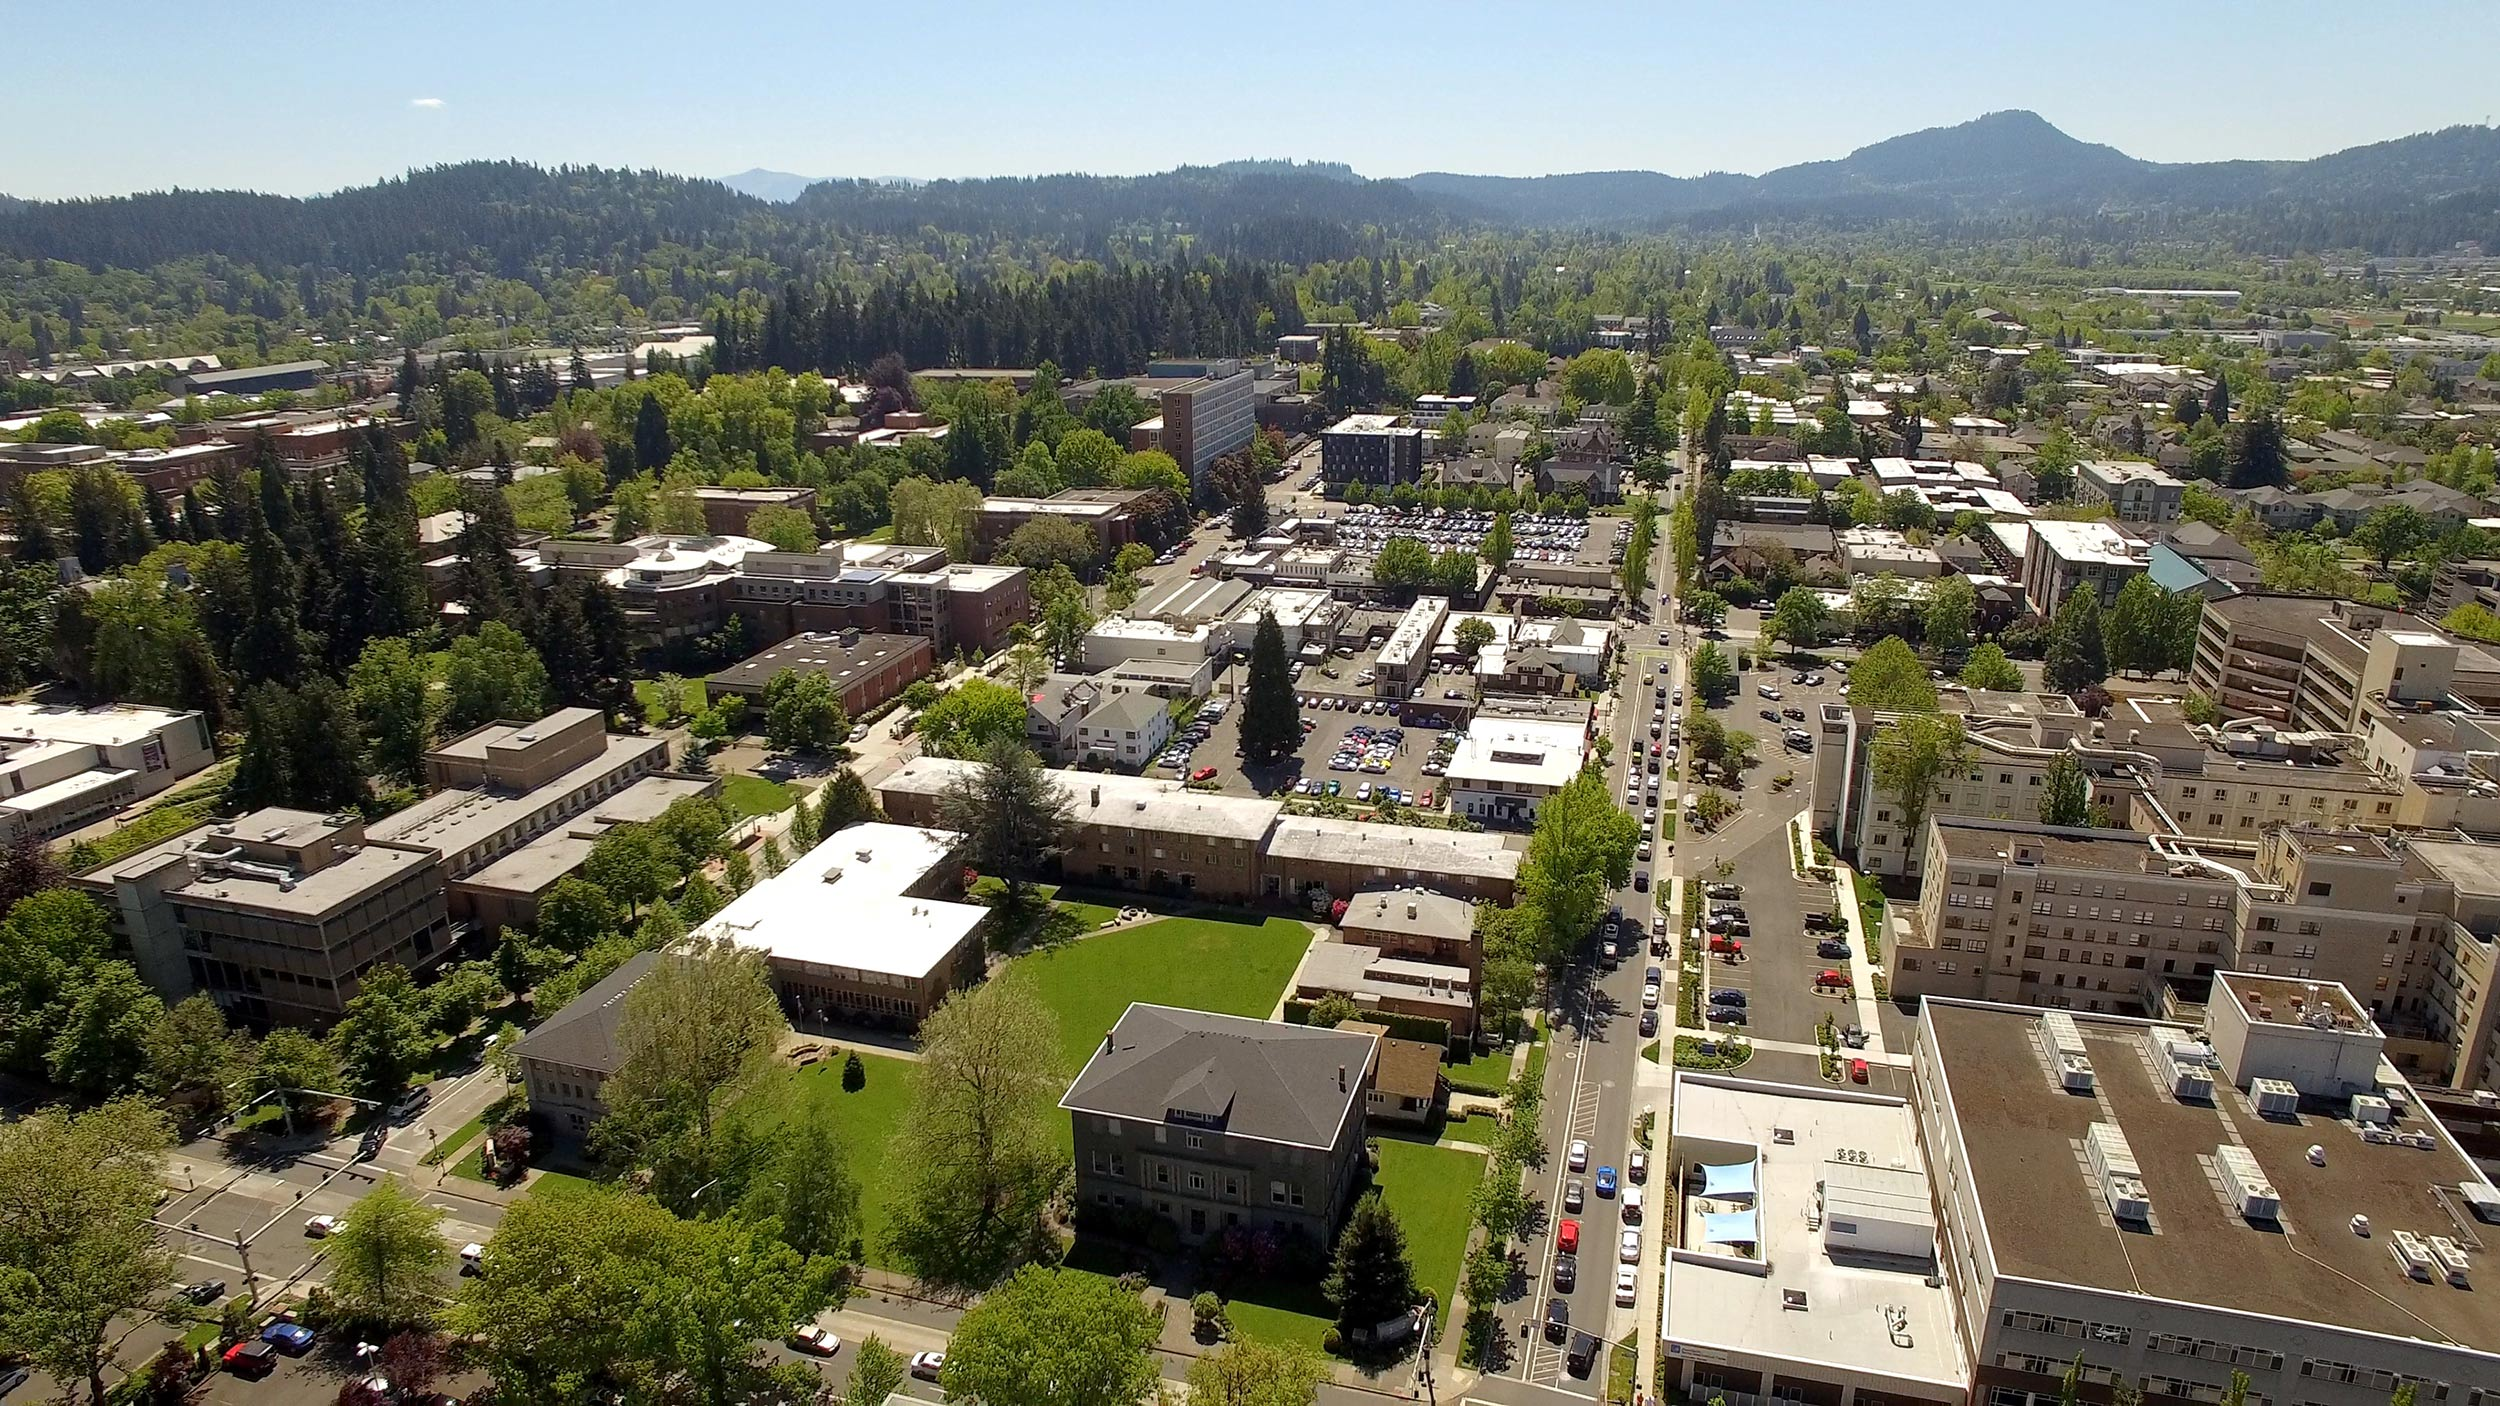 Aerial photo of Bushnell Campus near the University of Oregon